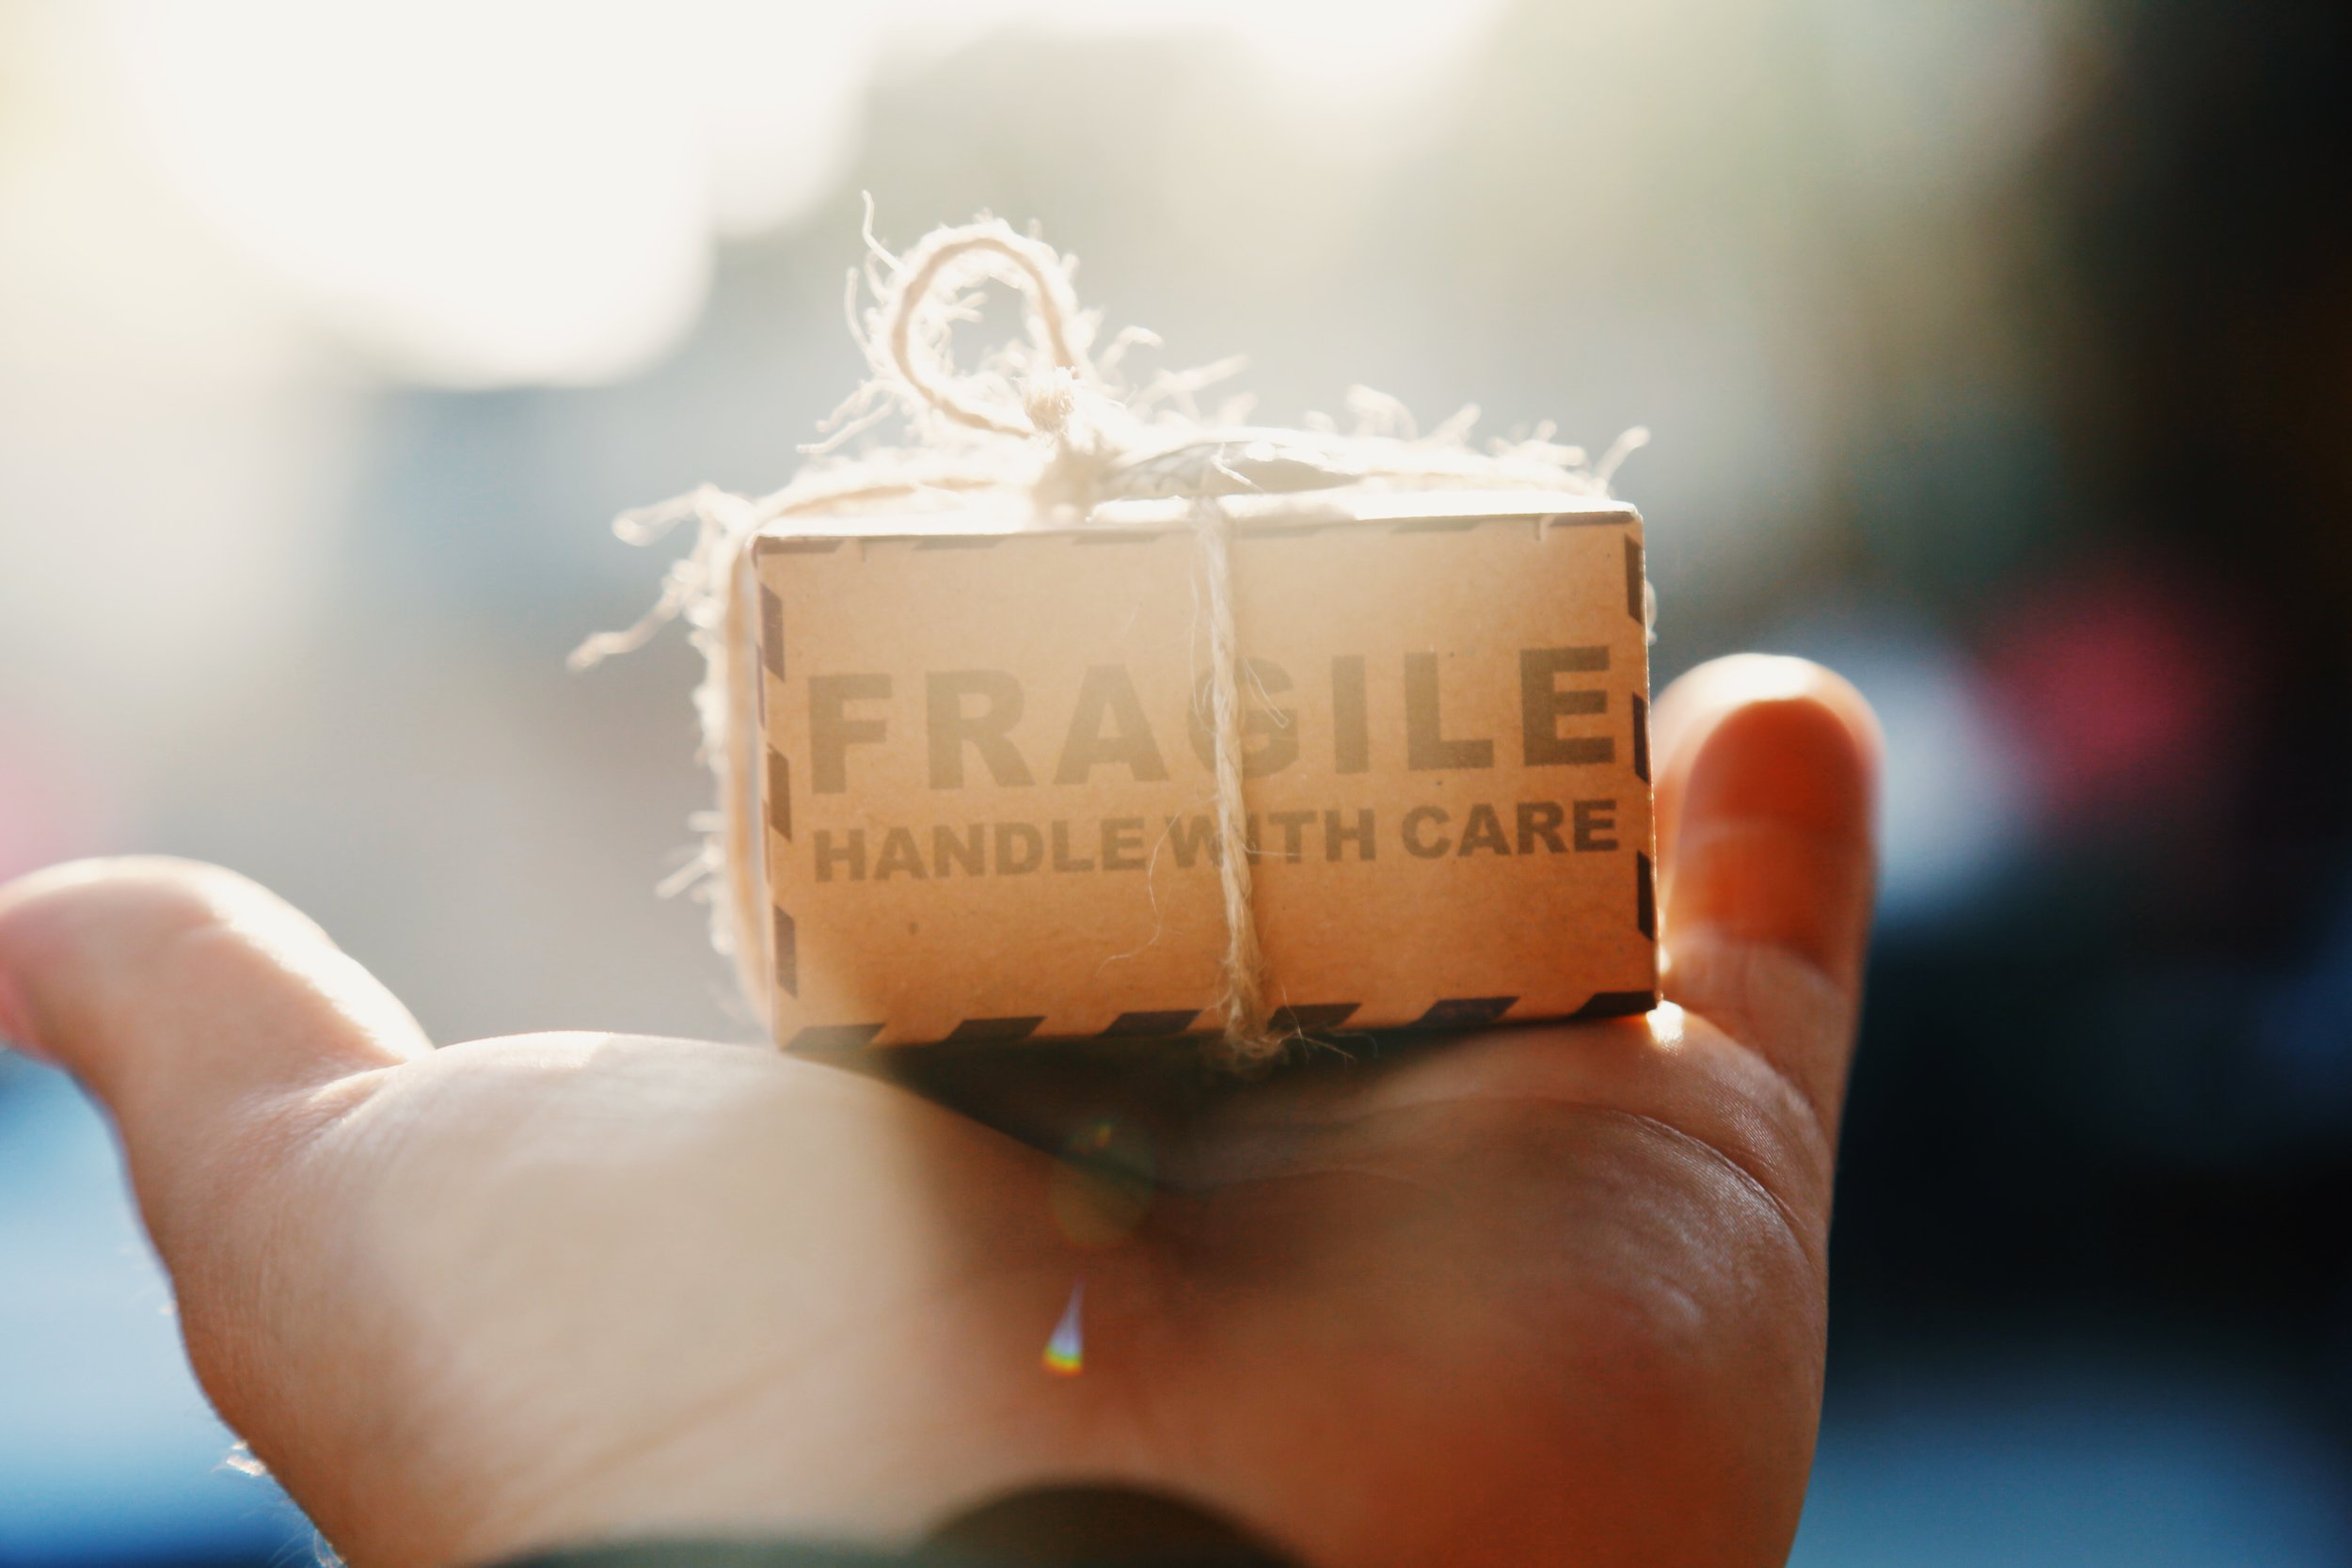 Image shows a hand with a small brown box that reads 'fragile - handle with care' to highlight the care and commitment Hygge Me places on providing beautifully packaged items.